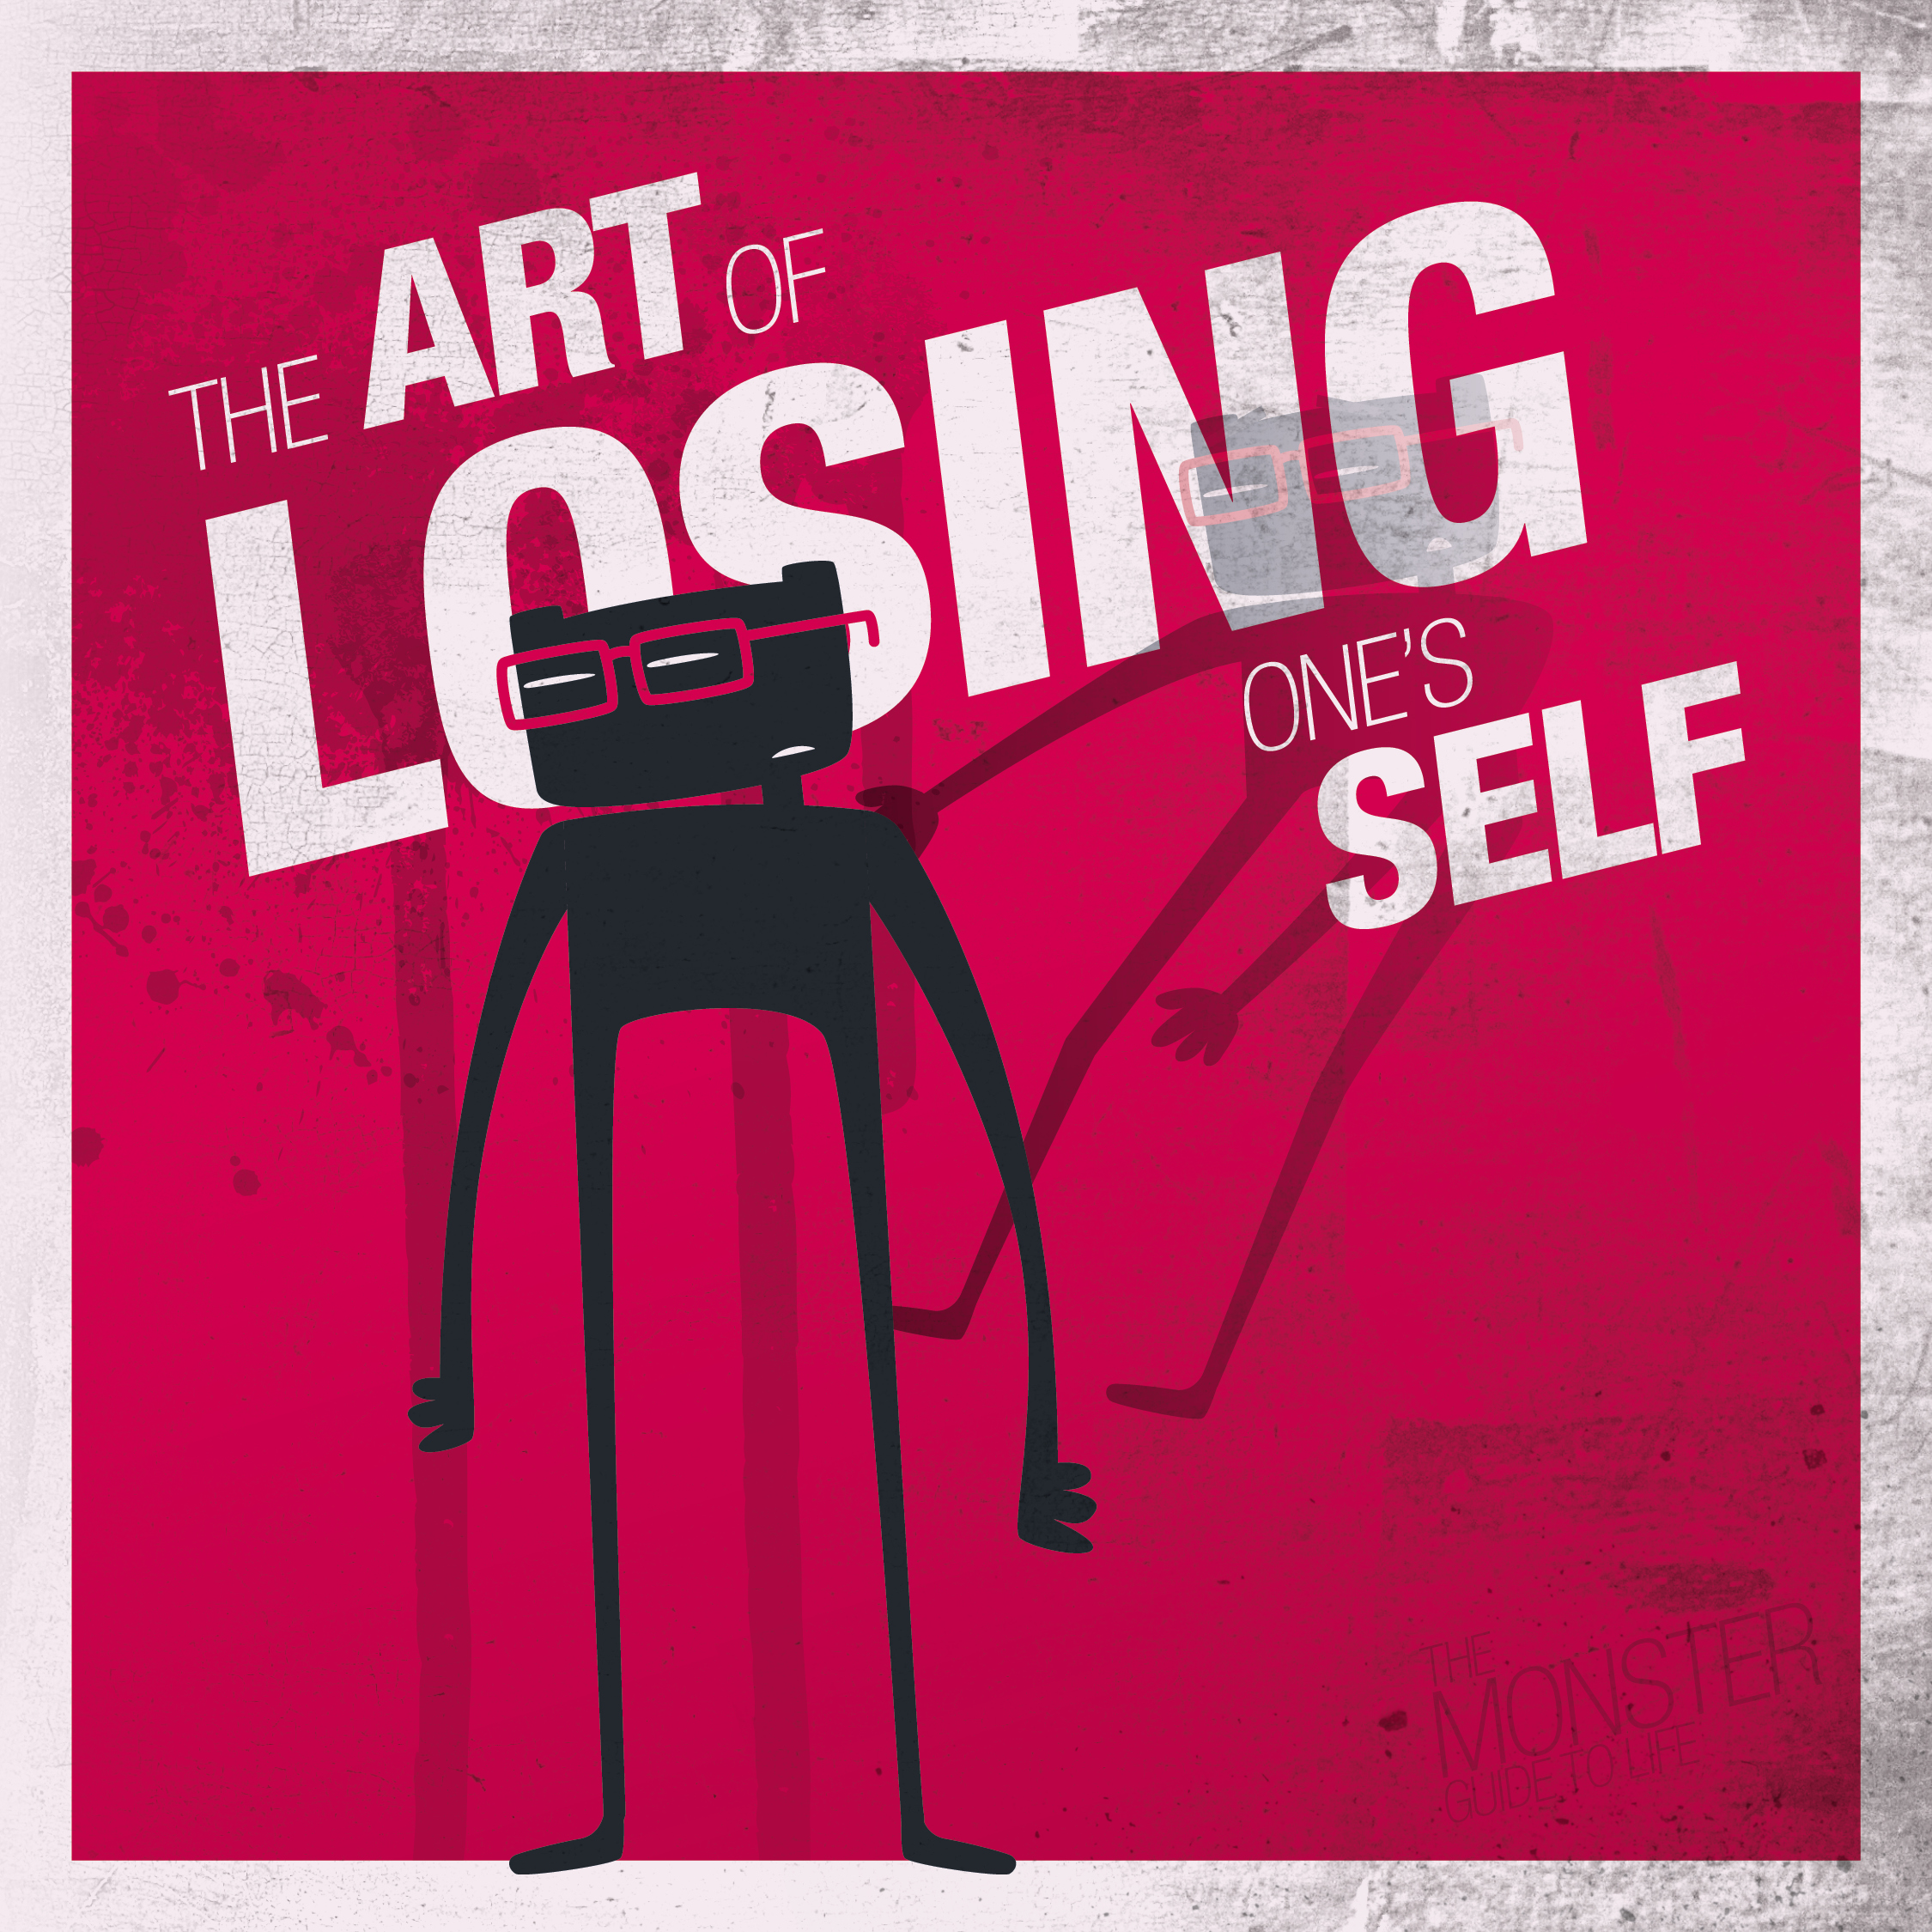 The Art Of Losing One's Self